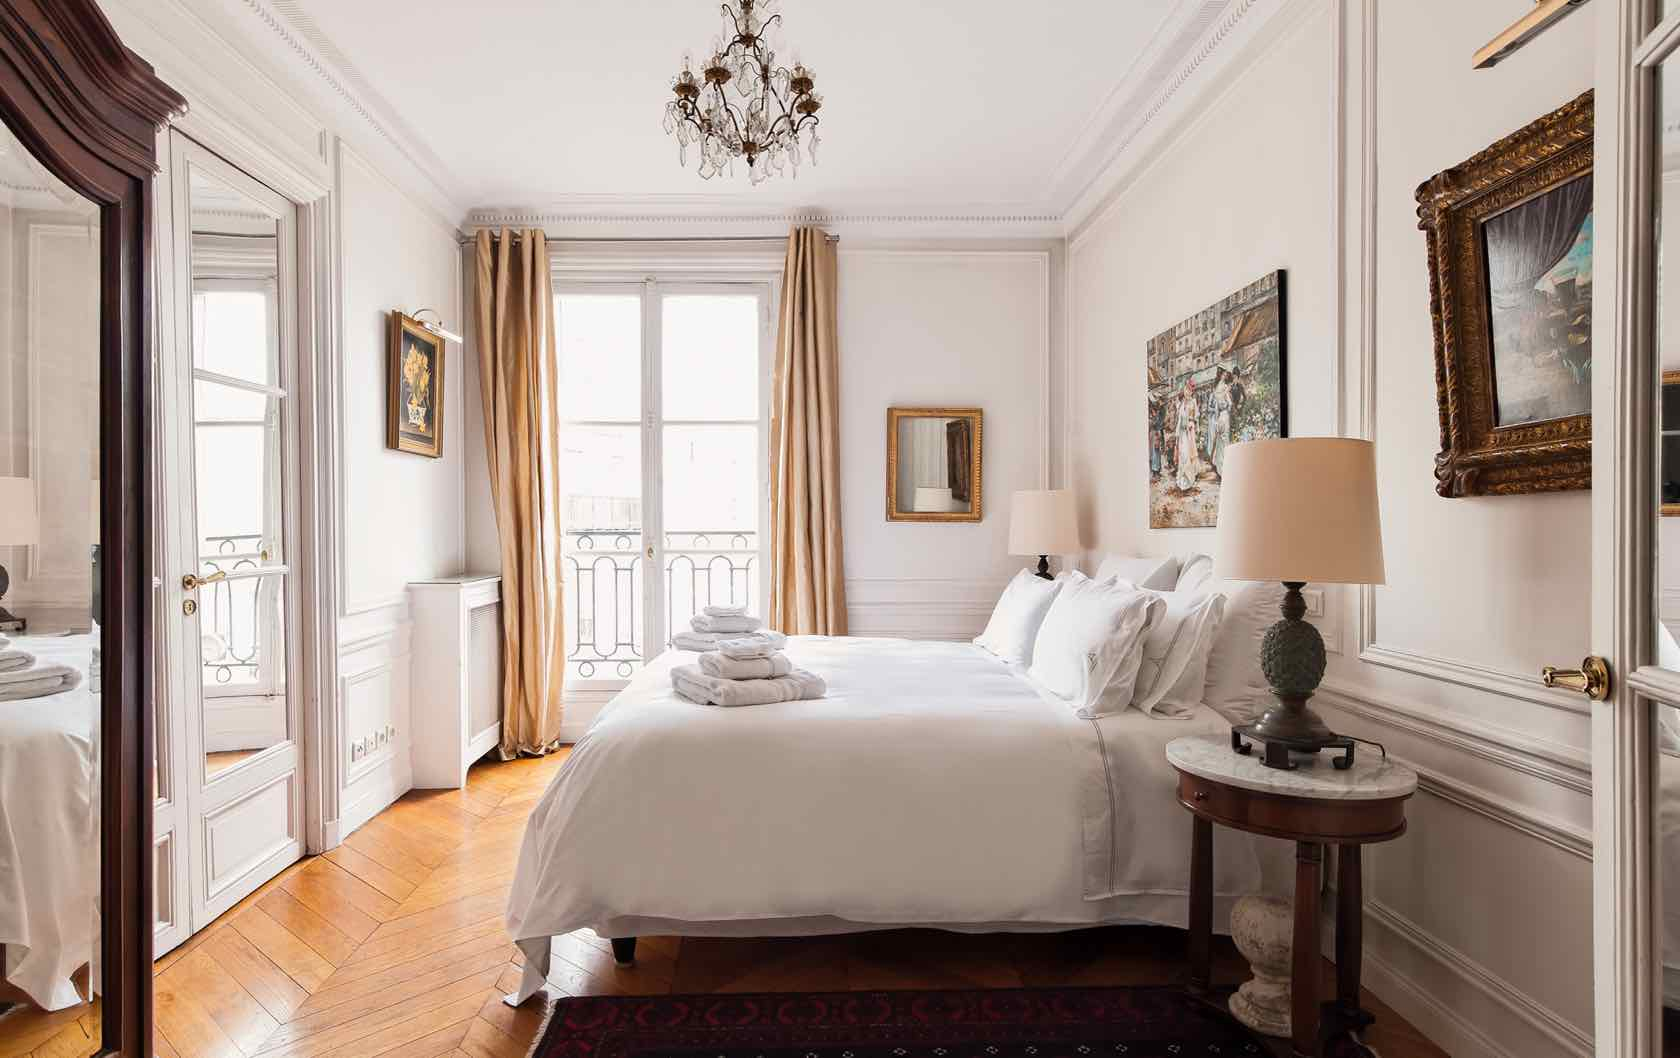 Large and Luxurious: 6 Perfect Paris Apartment Rentals for Your Family Vacation